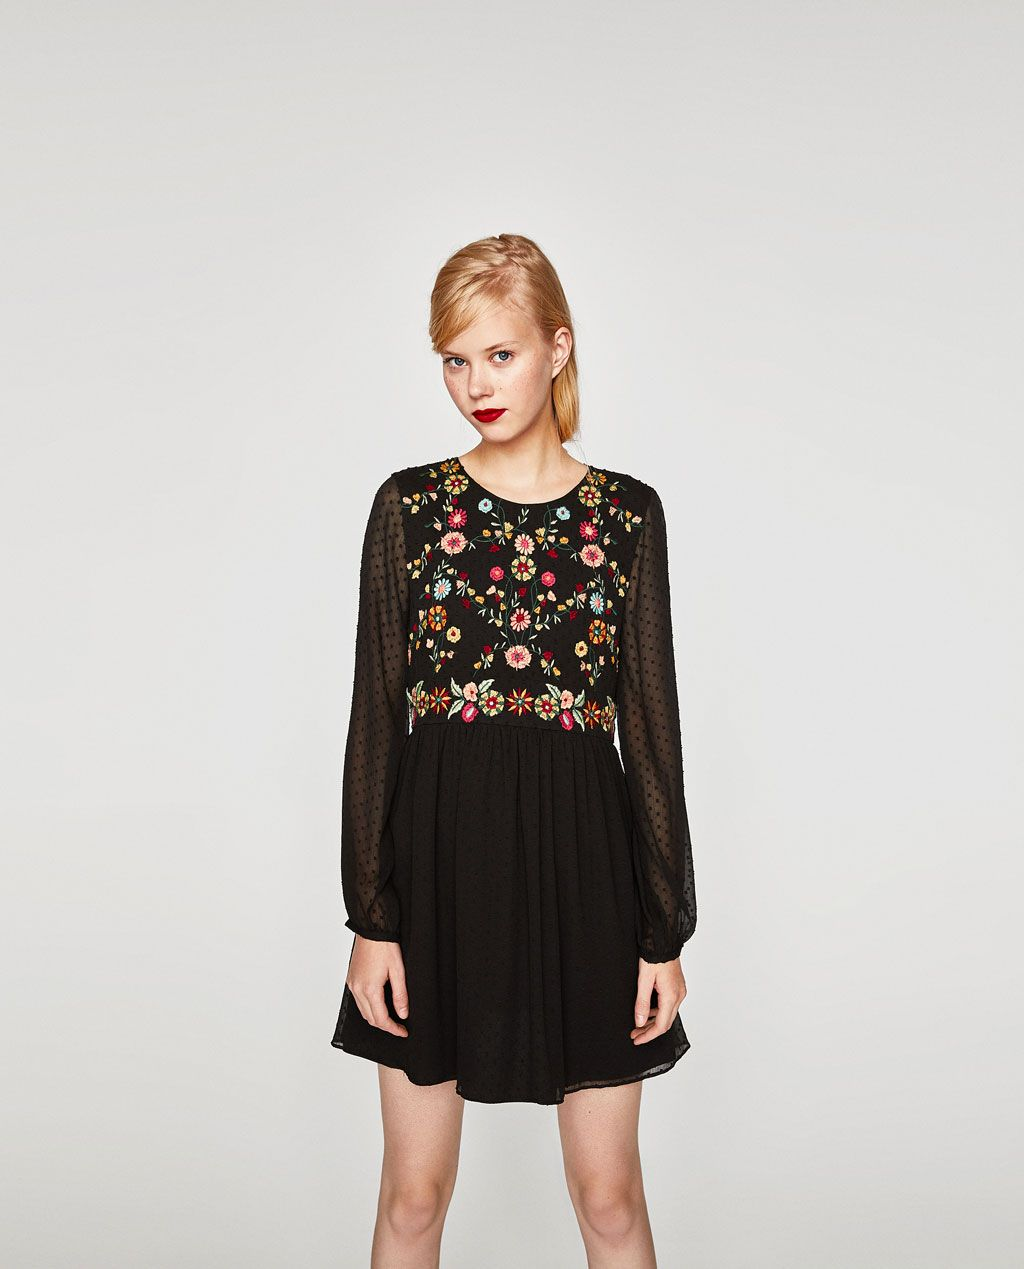 39f1cb8a44f0 Image 2 of EMBROIDERED DOTTED MESH DRESS from Zara | My Perfect ...